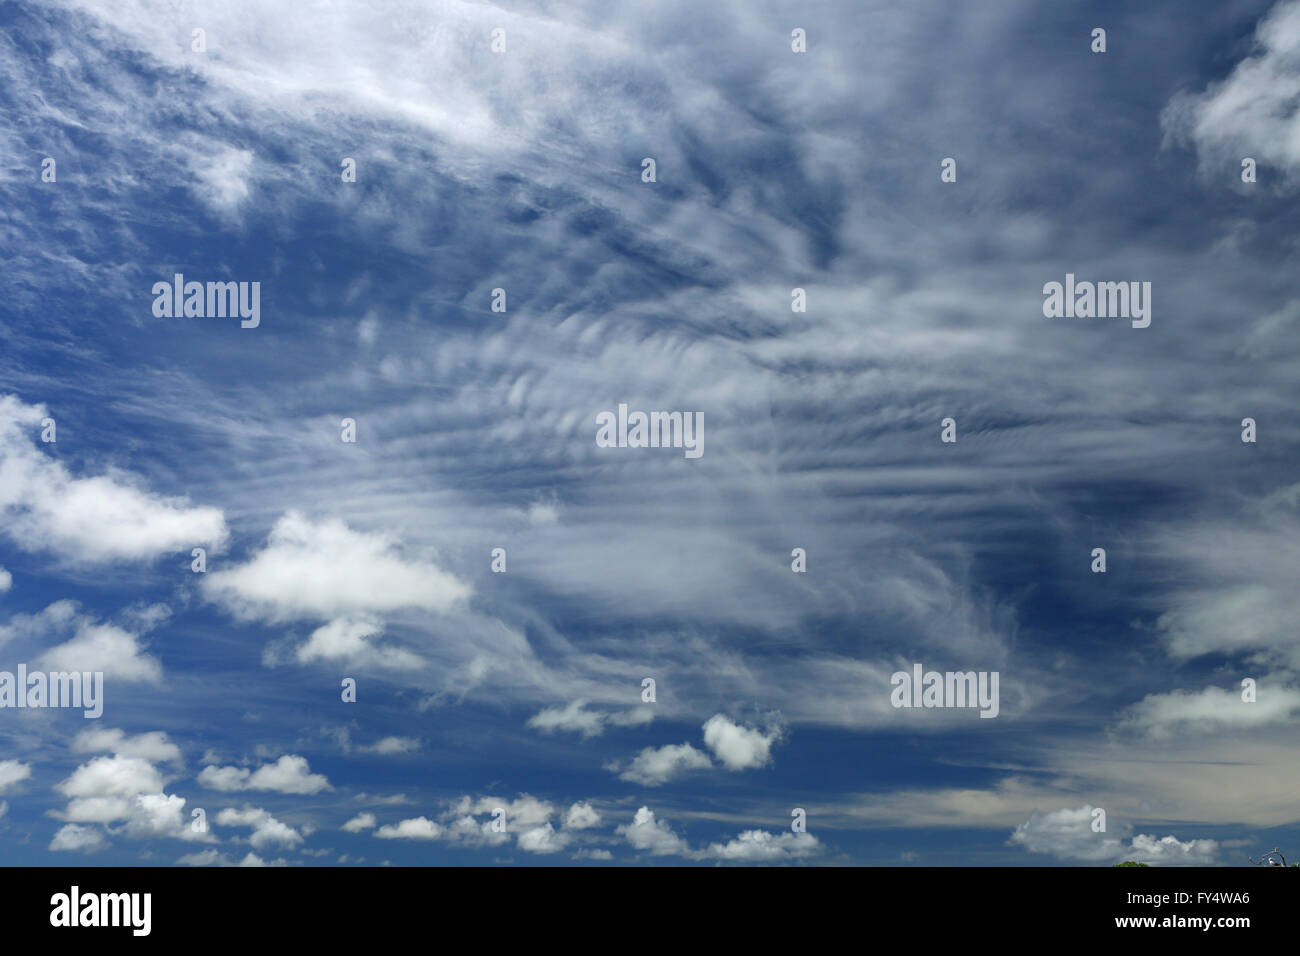 White, fluffy clouds in the blue sky - Stock Image